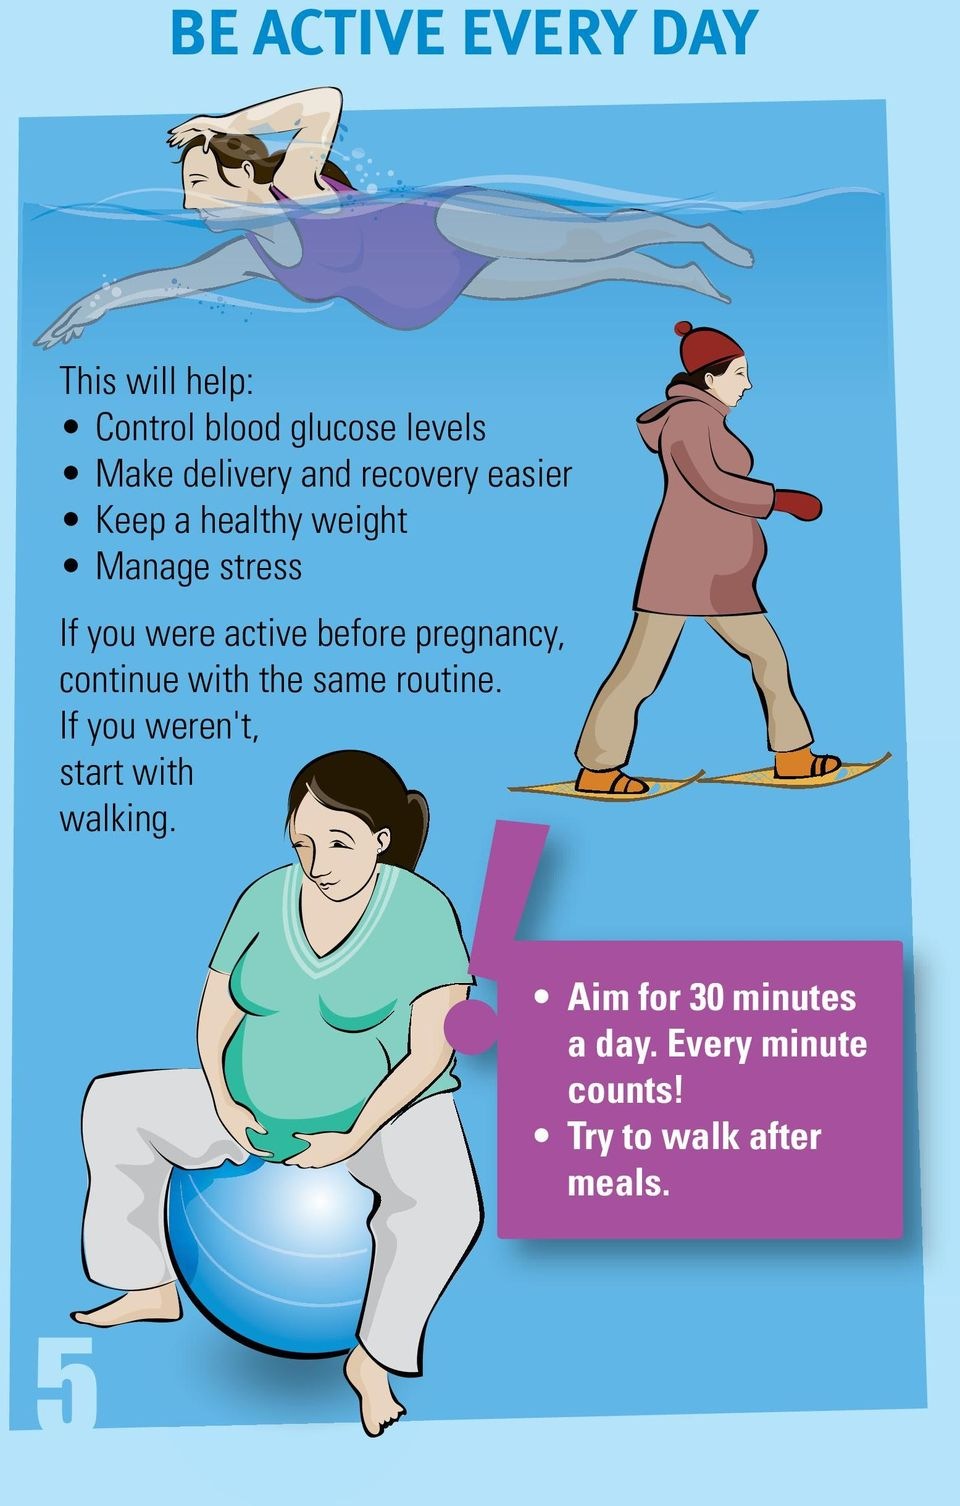 before pregnancy, continue with the same routine.